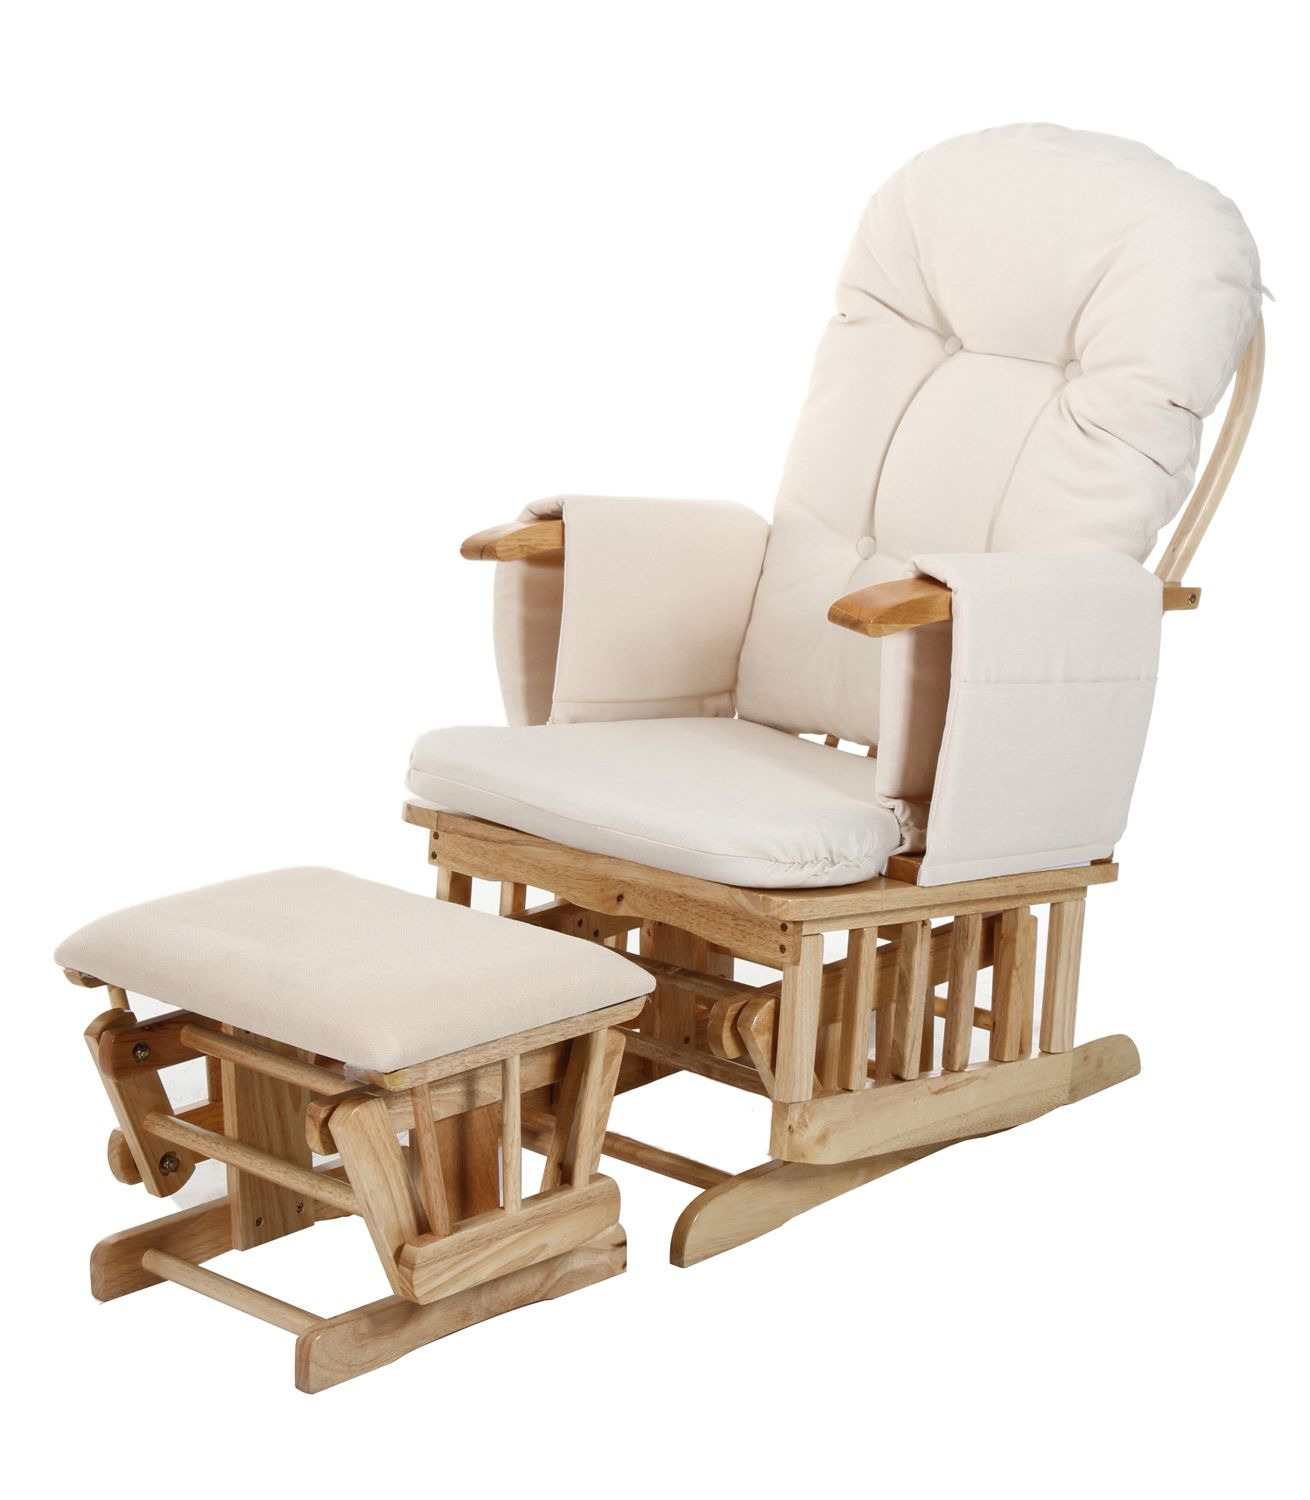 Buy Your Baby Weavers Recline Glider Stool From Kiddicare Ie